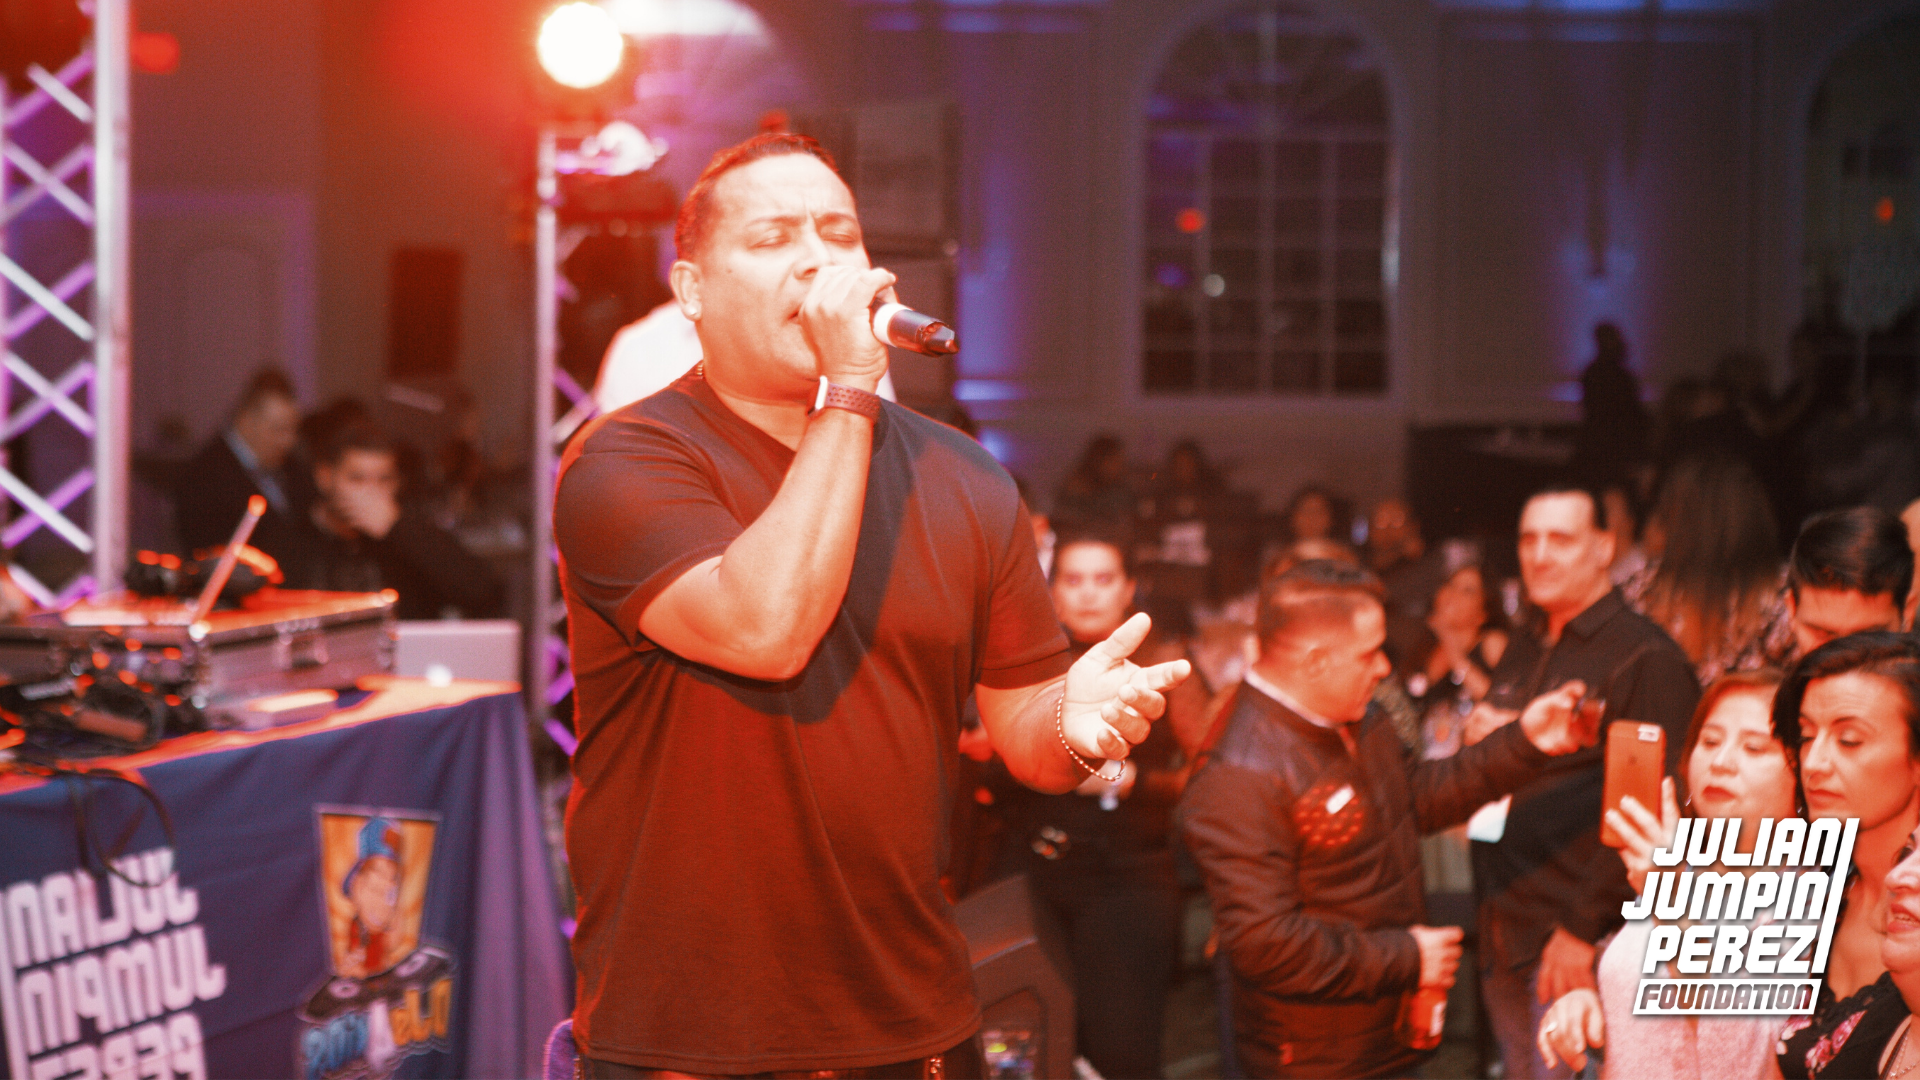 George Lamond performing at Djs4kids Fun